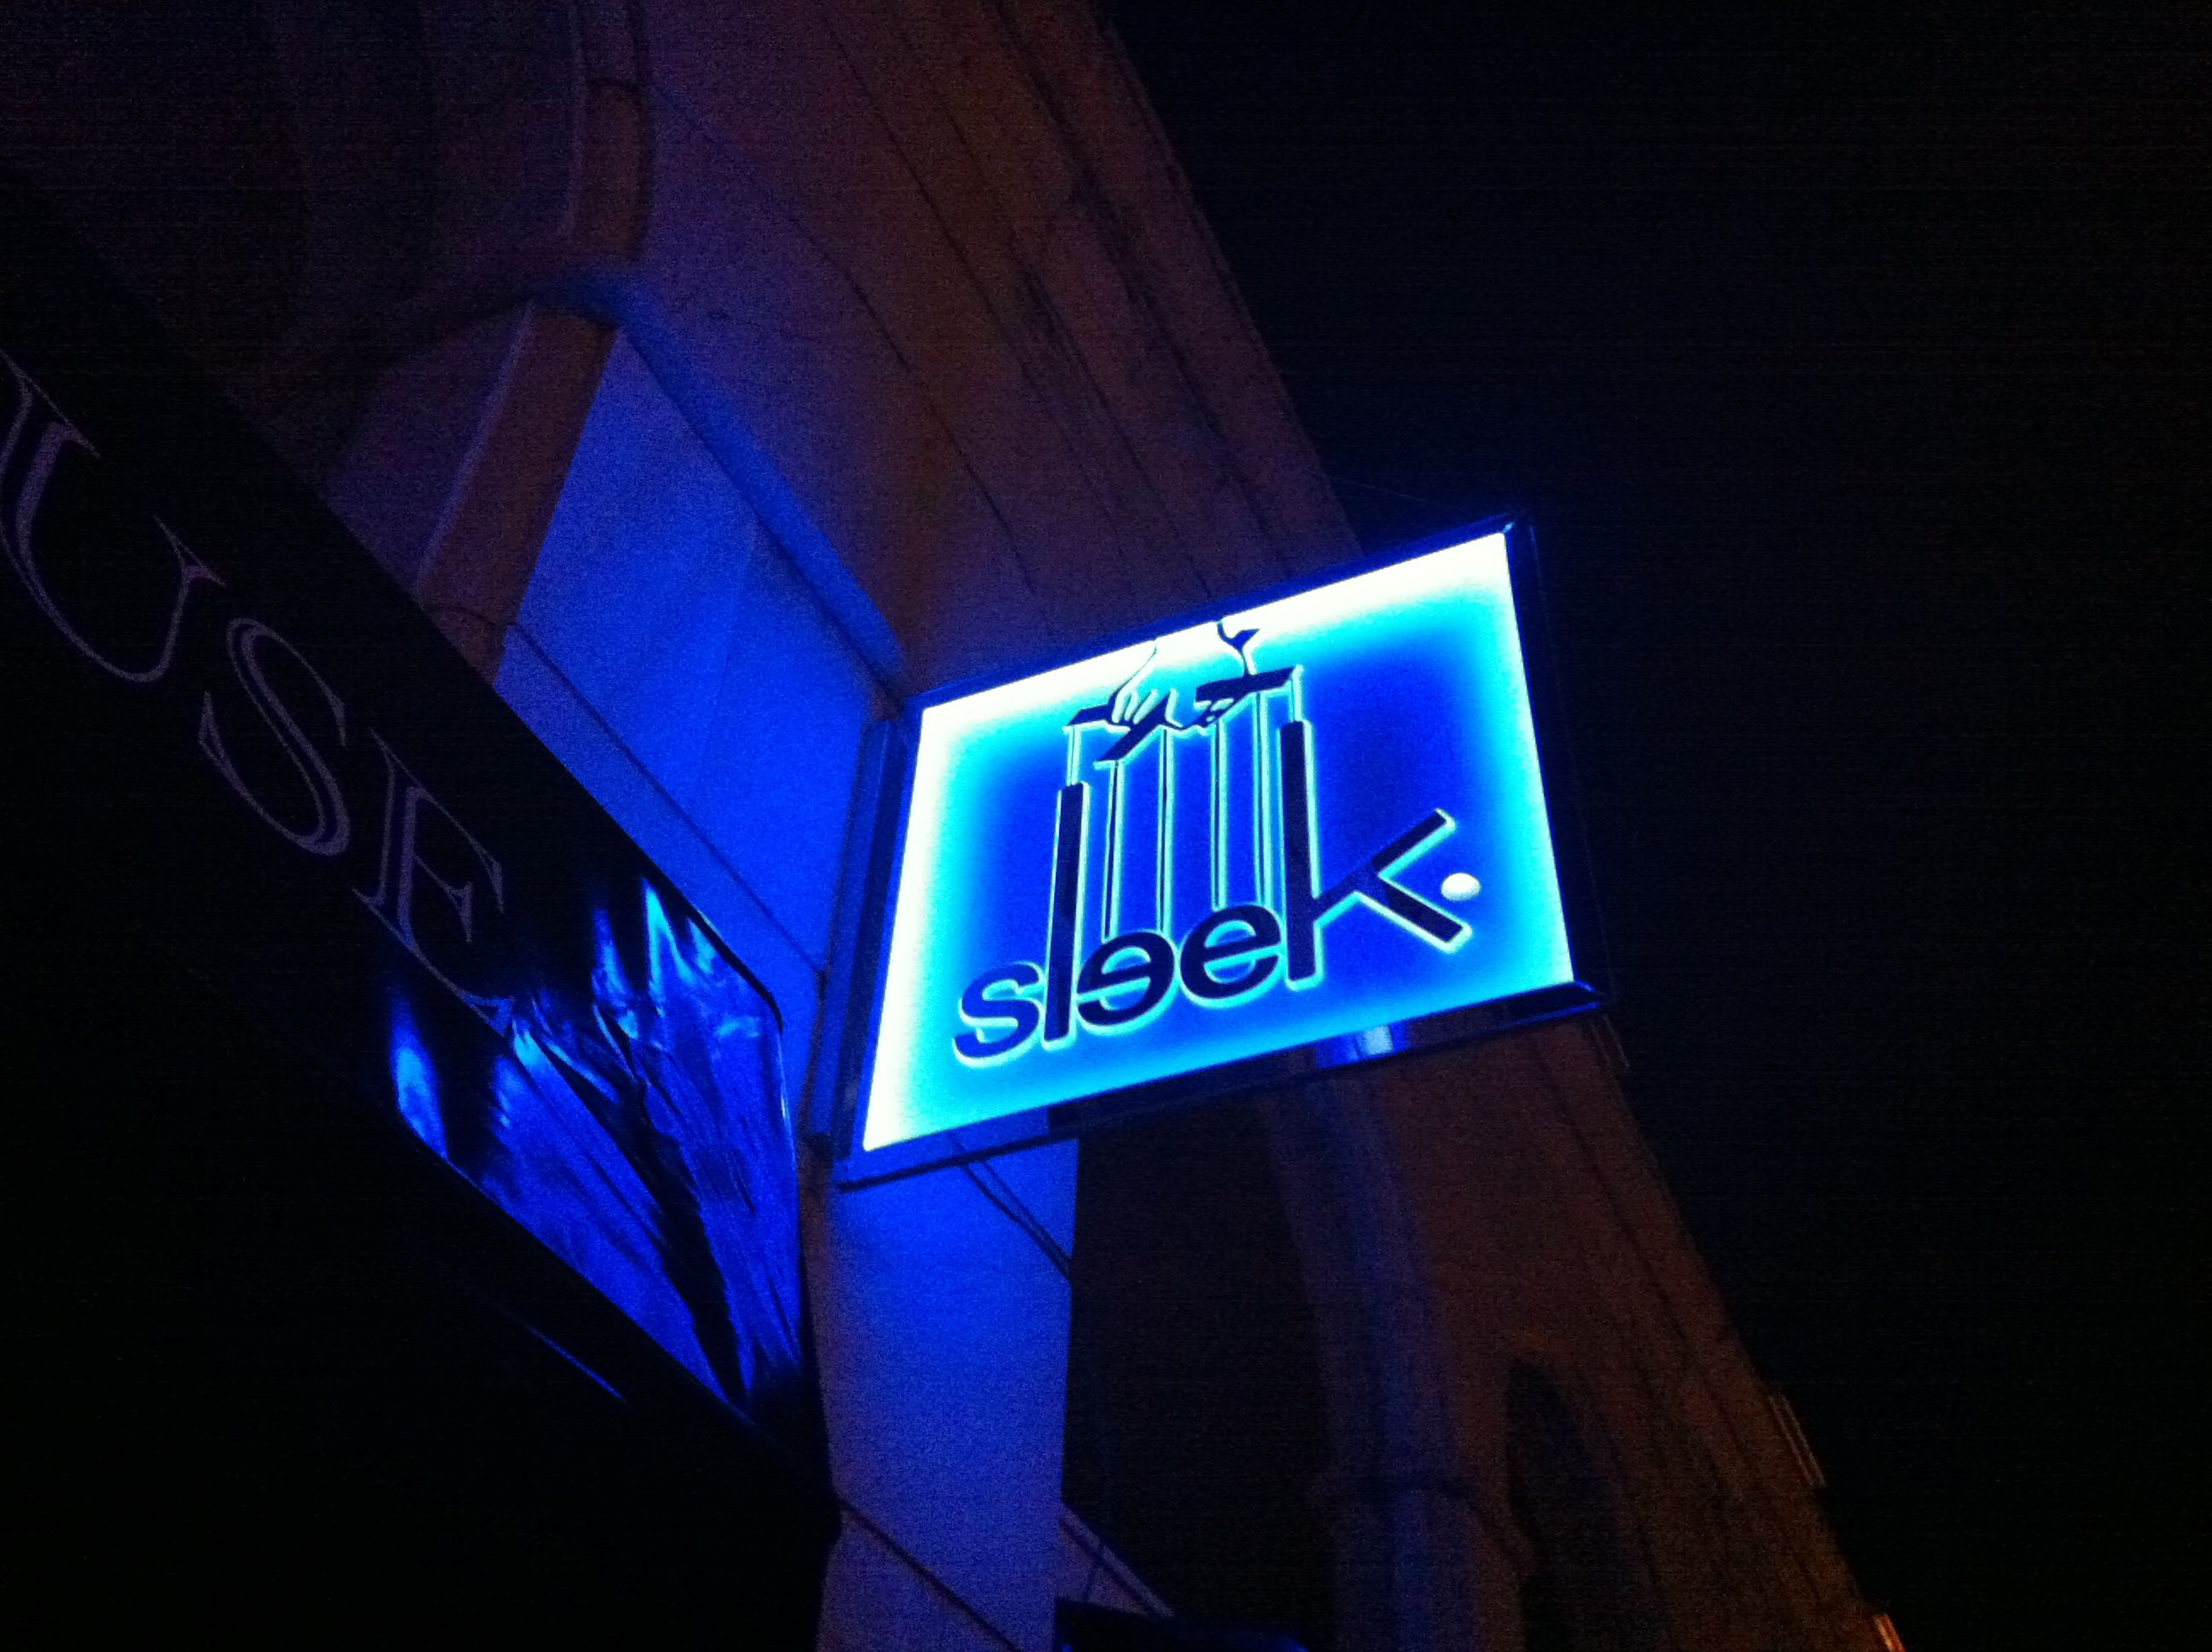 Illuminated peerspex sign